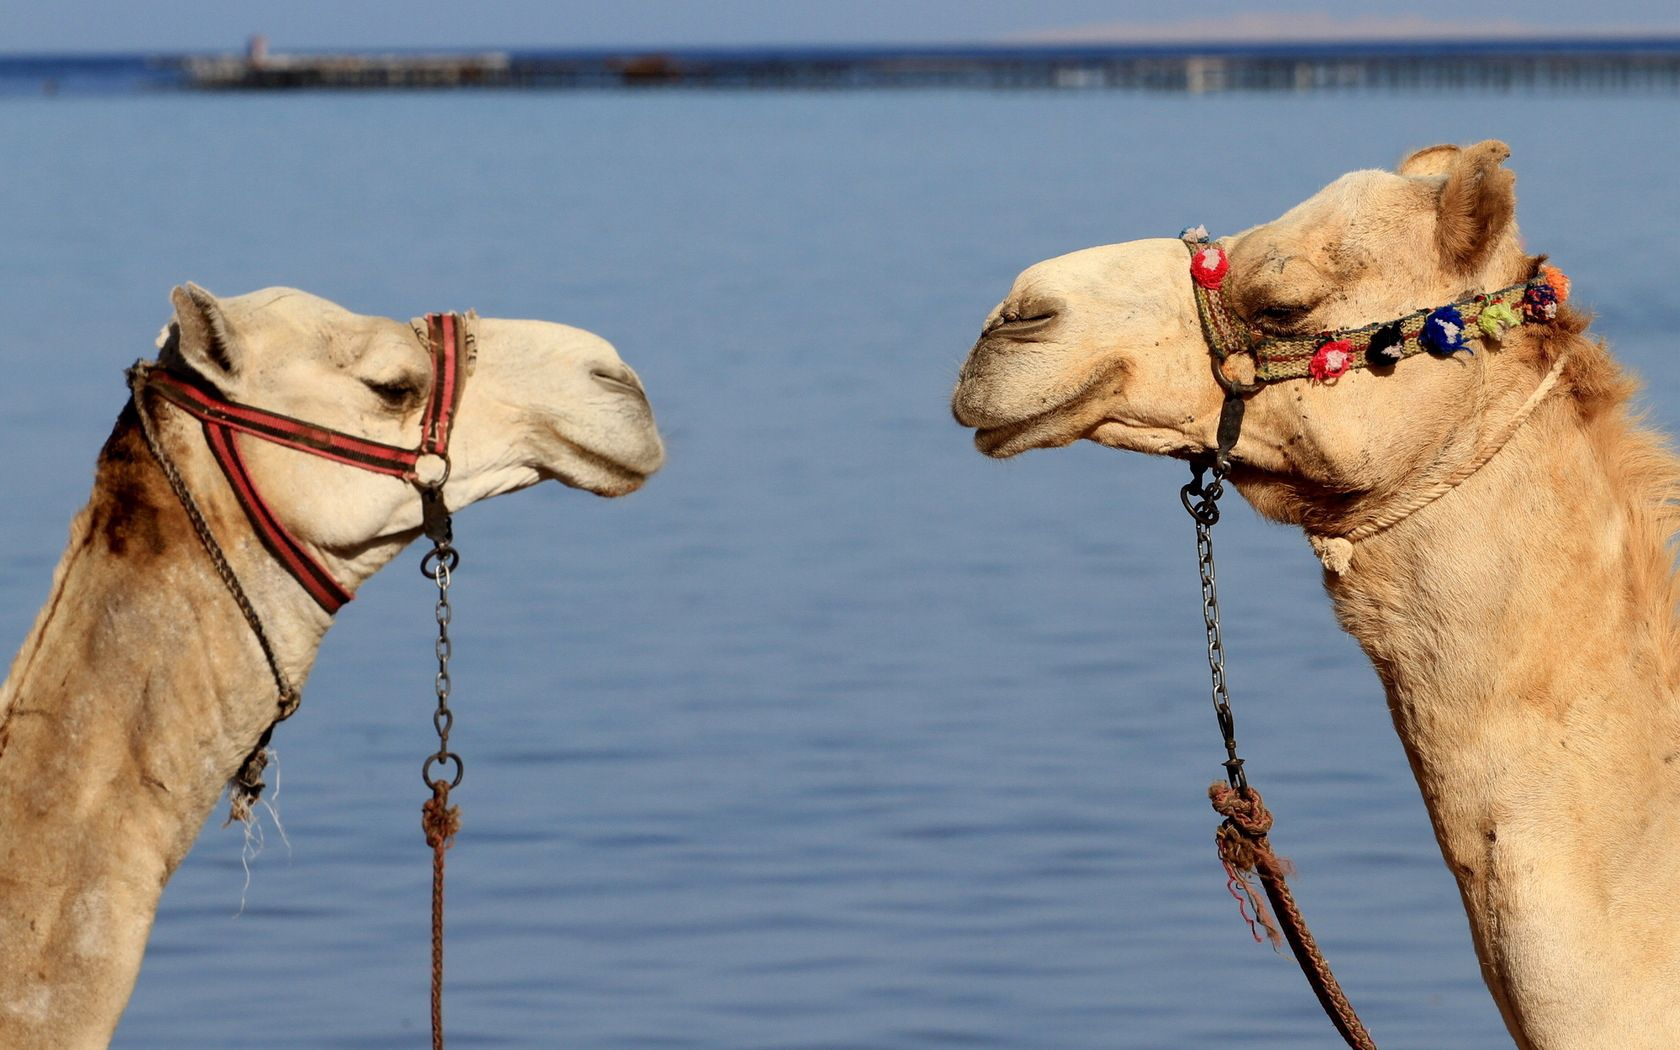 51513 download wallpaper Animals, Couple, Pair, Team, Water, Camels screensavers and pictures for free